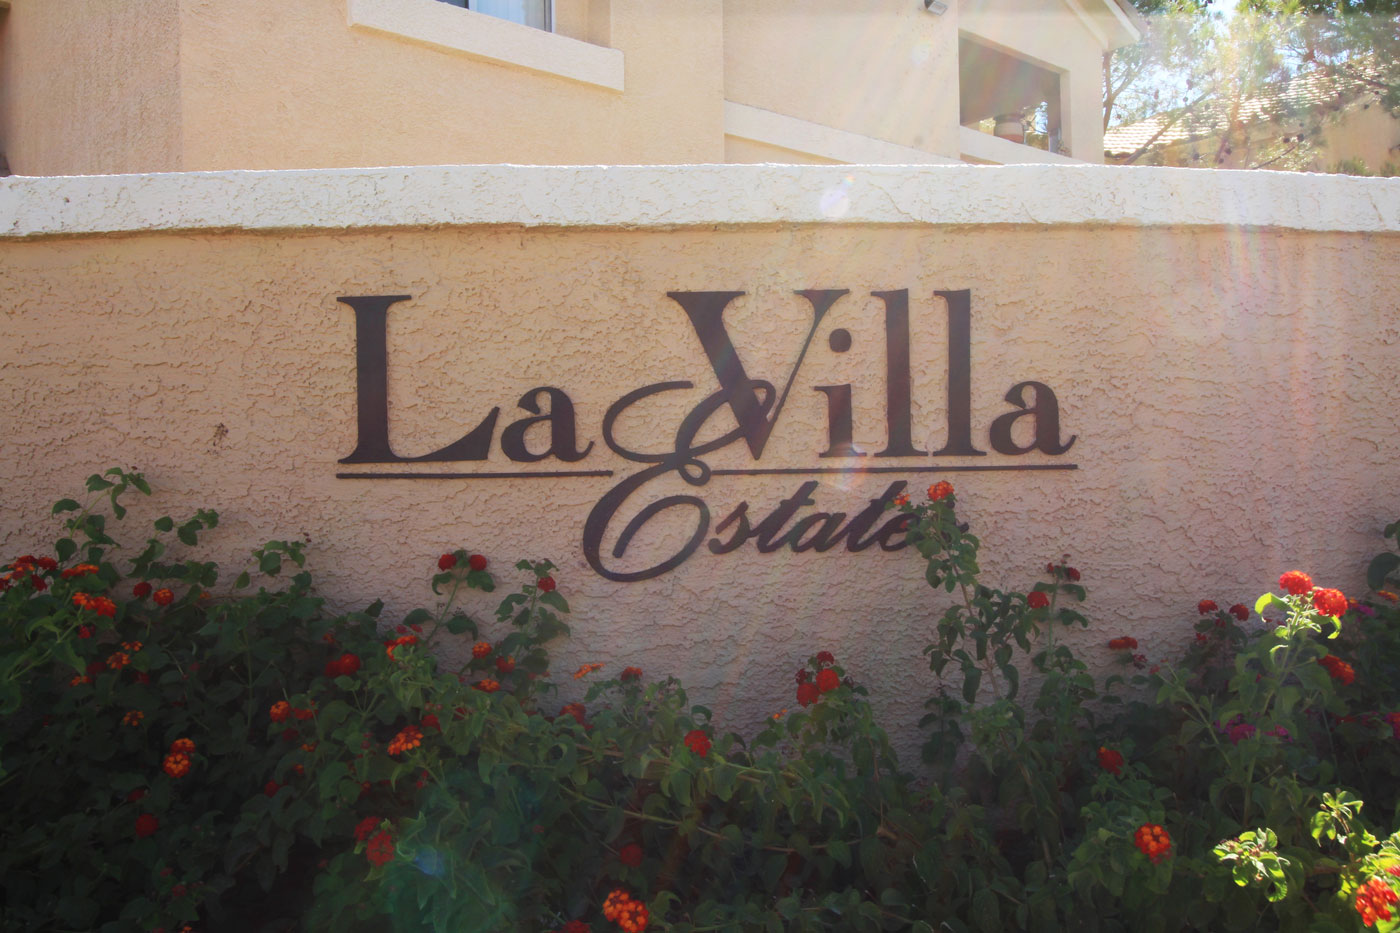 La Villa Estates